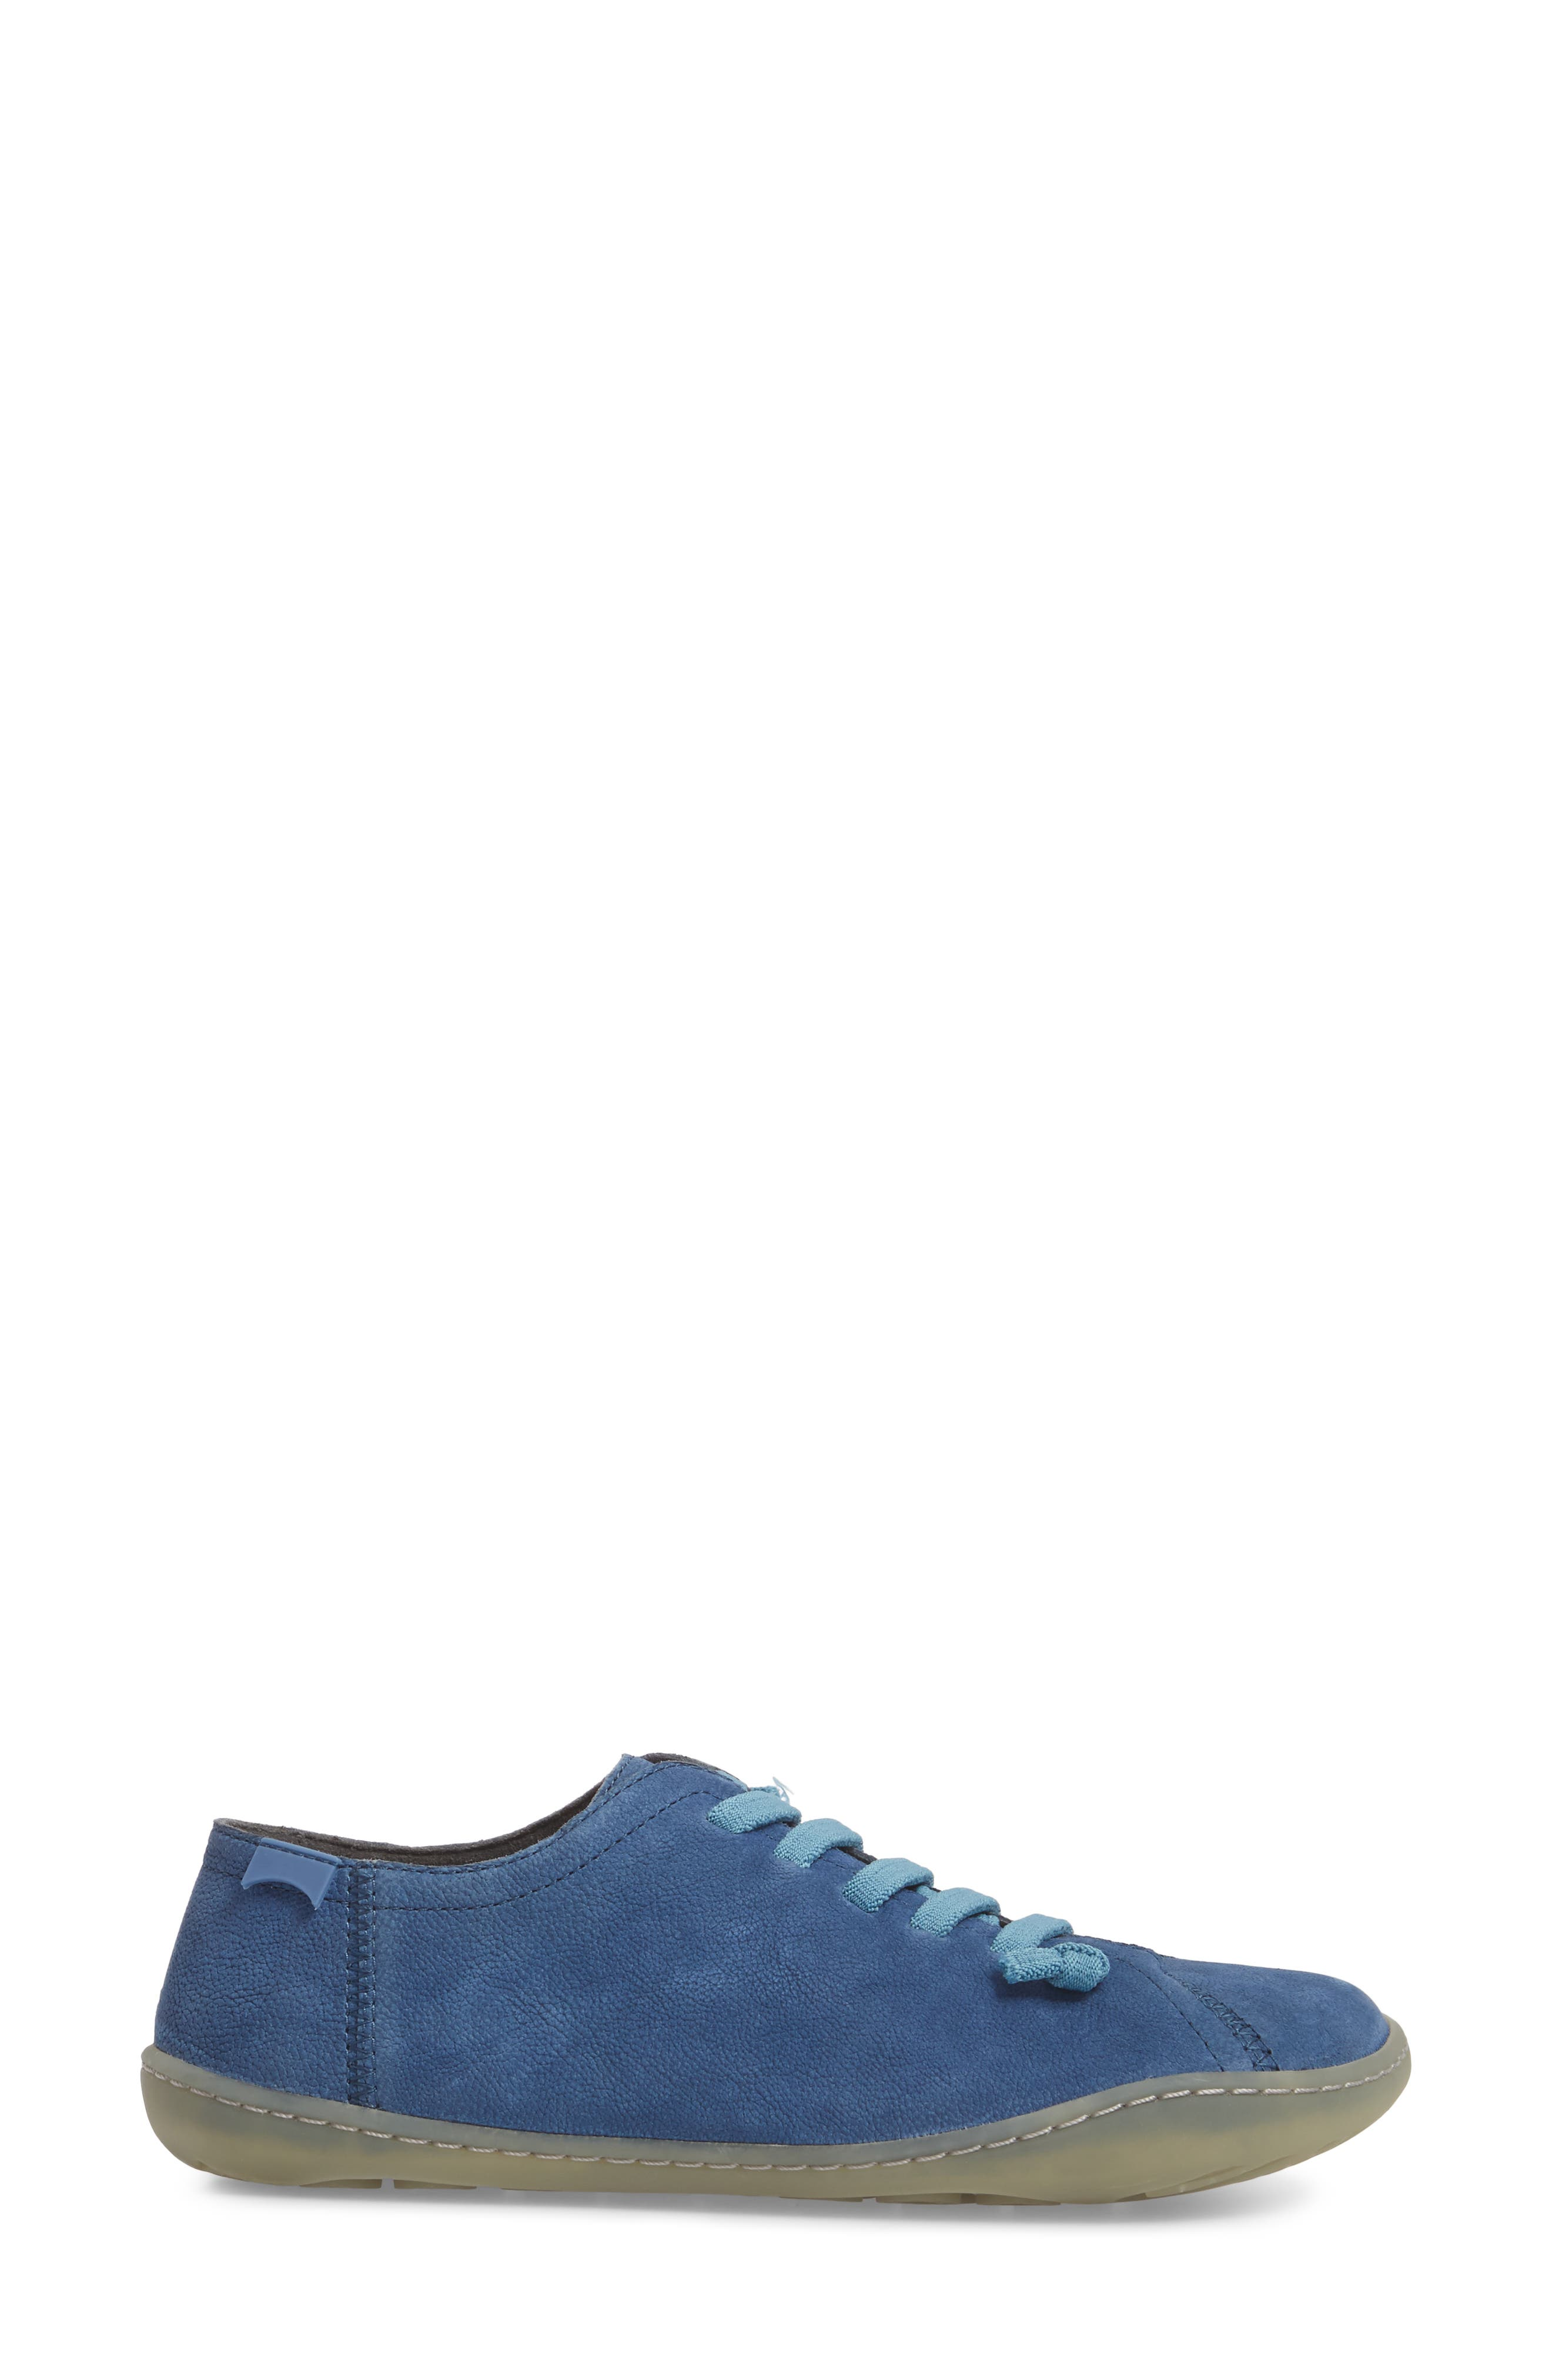 'Peu Cami' Leather Sneaker,                             Alternate thumbnail 3, color,                             420